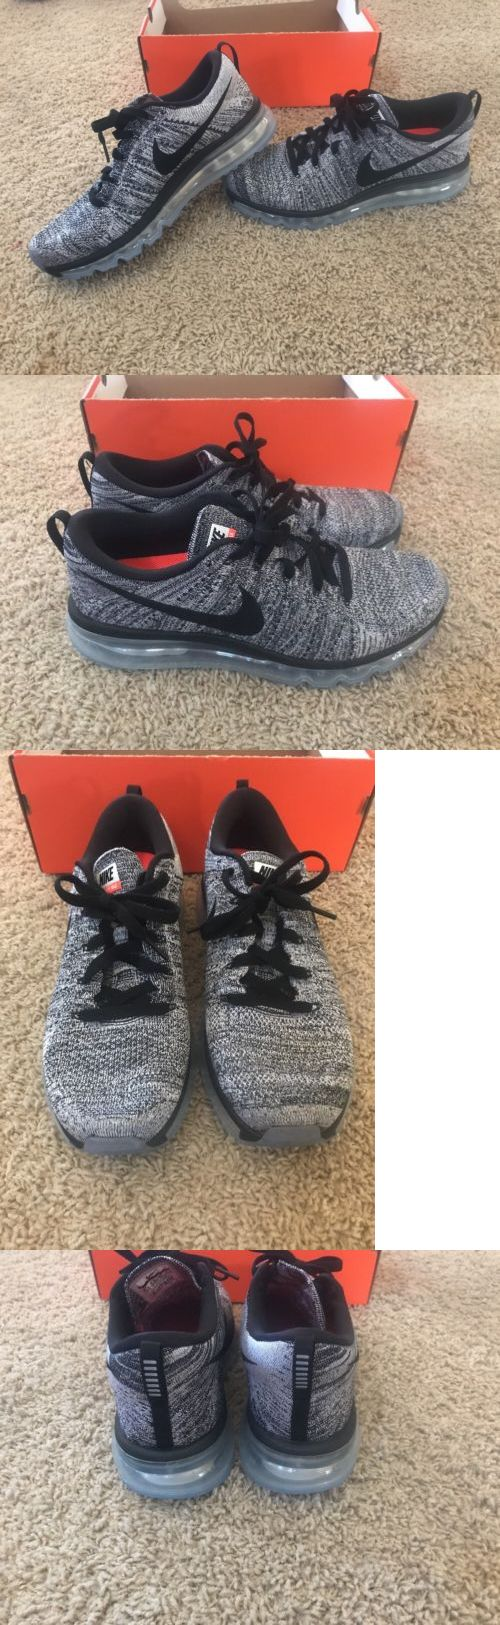 Athletic 15709: Nike Men S Flyknit Air Max Running Shoes. Size 9.5. Oreo. 620469-105 -> BUY IT NOW ONLY: $150 on eBay!